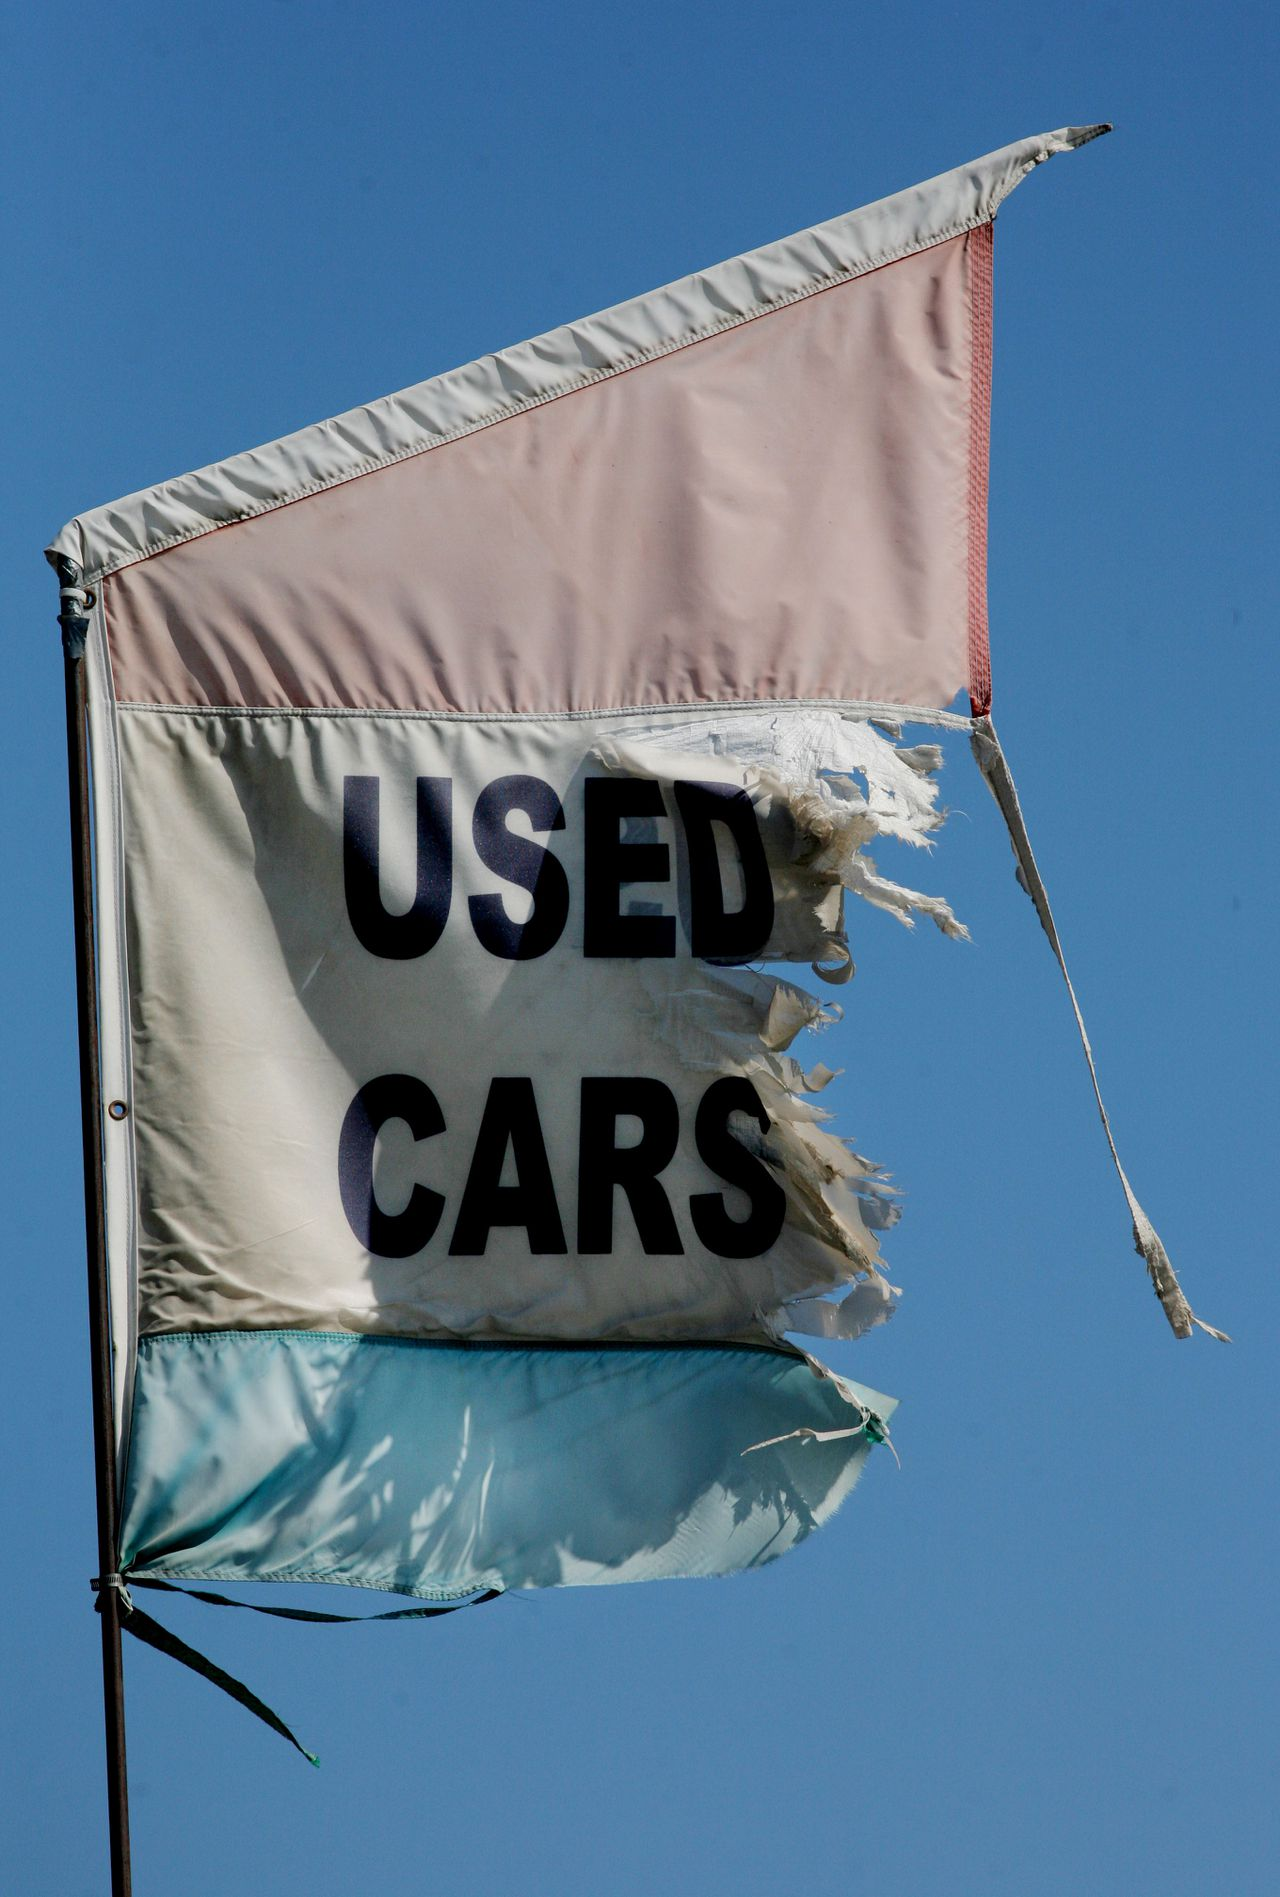 Leaseplan doet meer dan alleen auto's leasen. Foto Sandy Huffaker/Bloomberg News A worn Used Car flag flies at a car dealership in National City California, U.S., on Thursday, Sept. 4, 2008. U.S. prices for used large pickup trucks and sport-utility vehicles tumbled again in July, adding to pressure on automakers and other lease providers, according to Manheim Consulting. Photographer: Sandy Huffaker/Bloomberg News